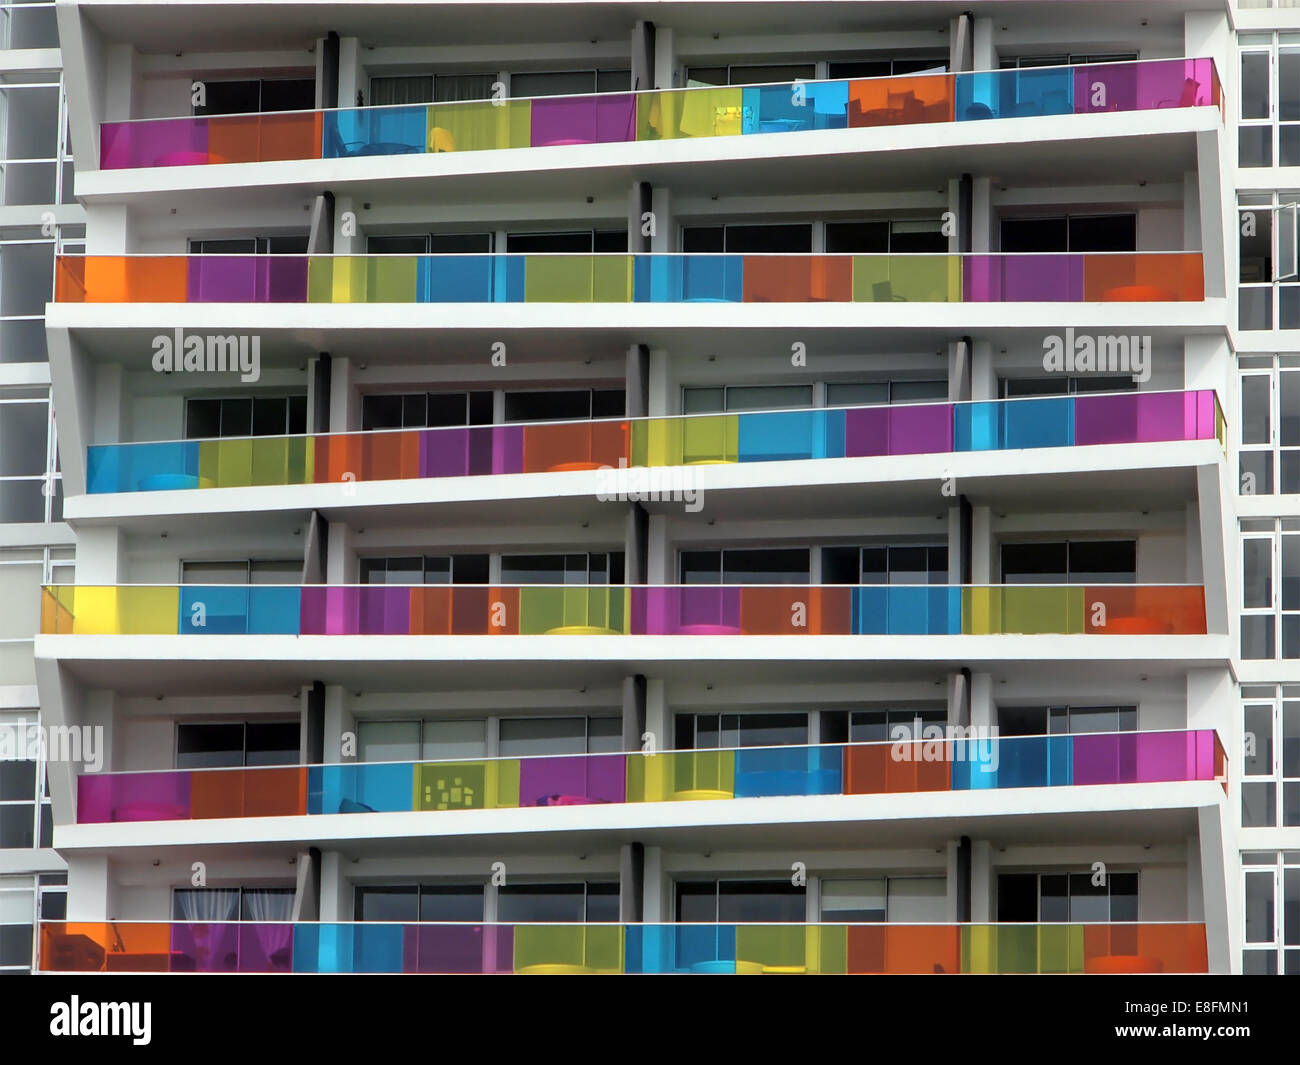 Apartment building with colorful balcony - Stock Image